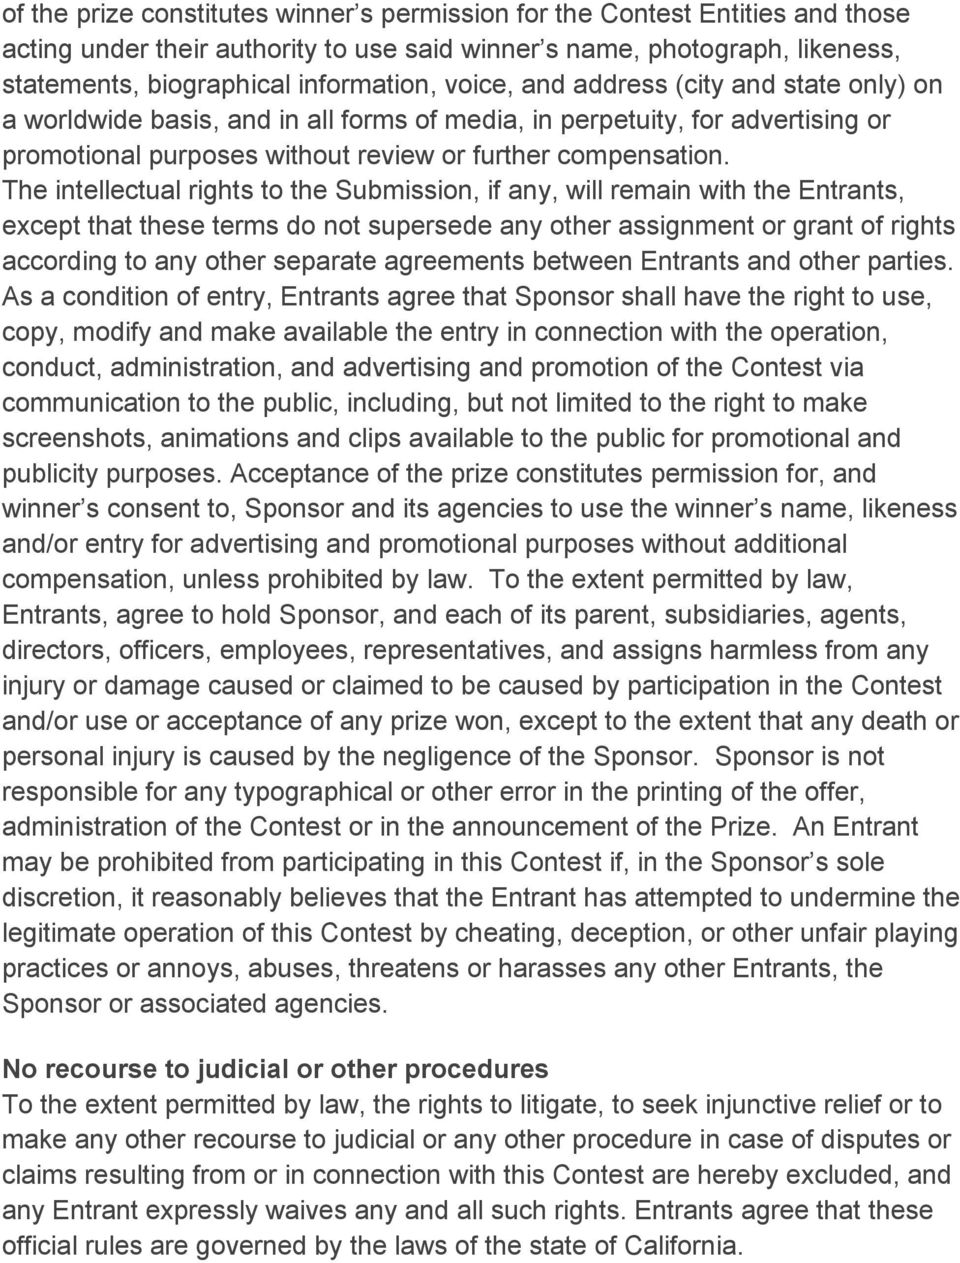 The intellectual rights to the Submission, if any, will remain with the Entrants, except that these terms do not supersede any other assignment or grant of rights according to any other separate